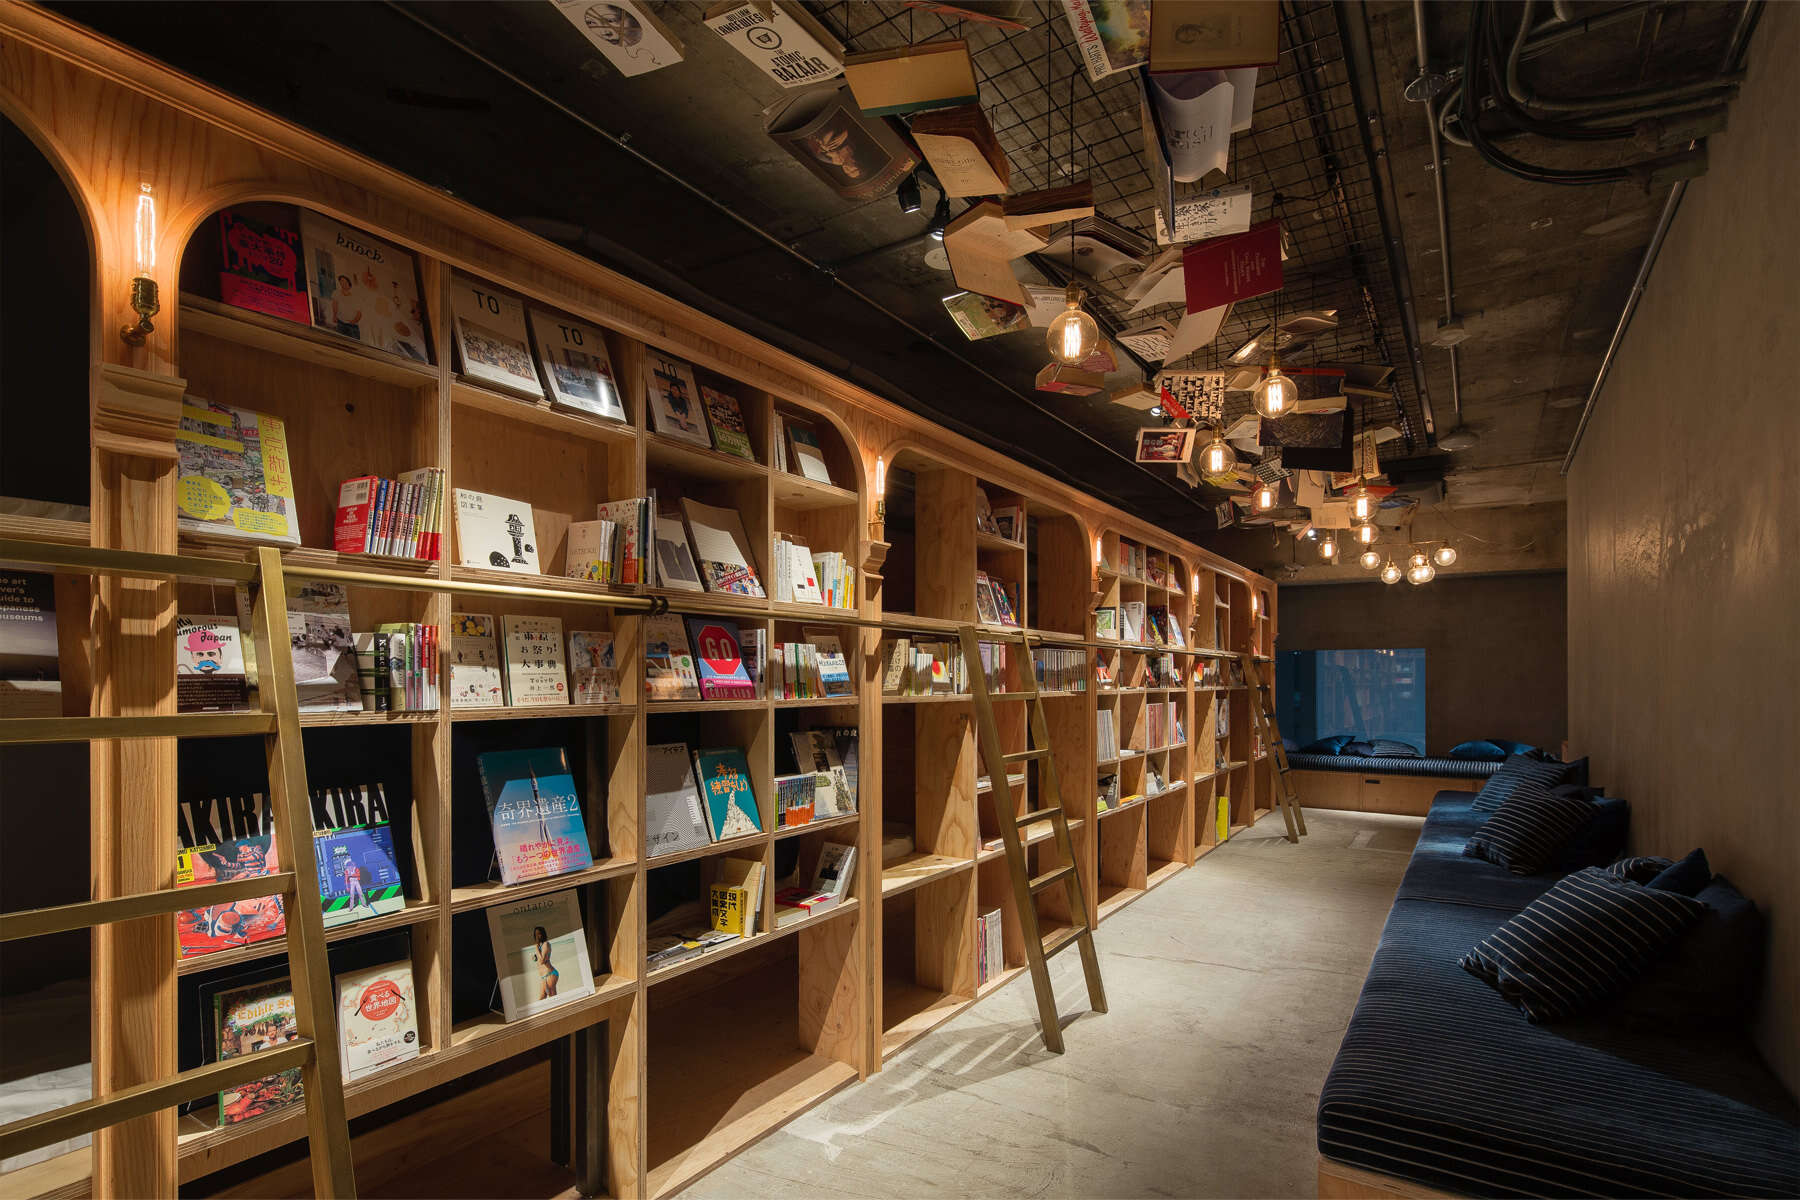 Sleeping in a Sea of Books, Is This Your Type of Accommodation?